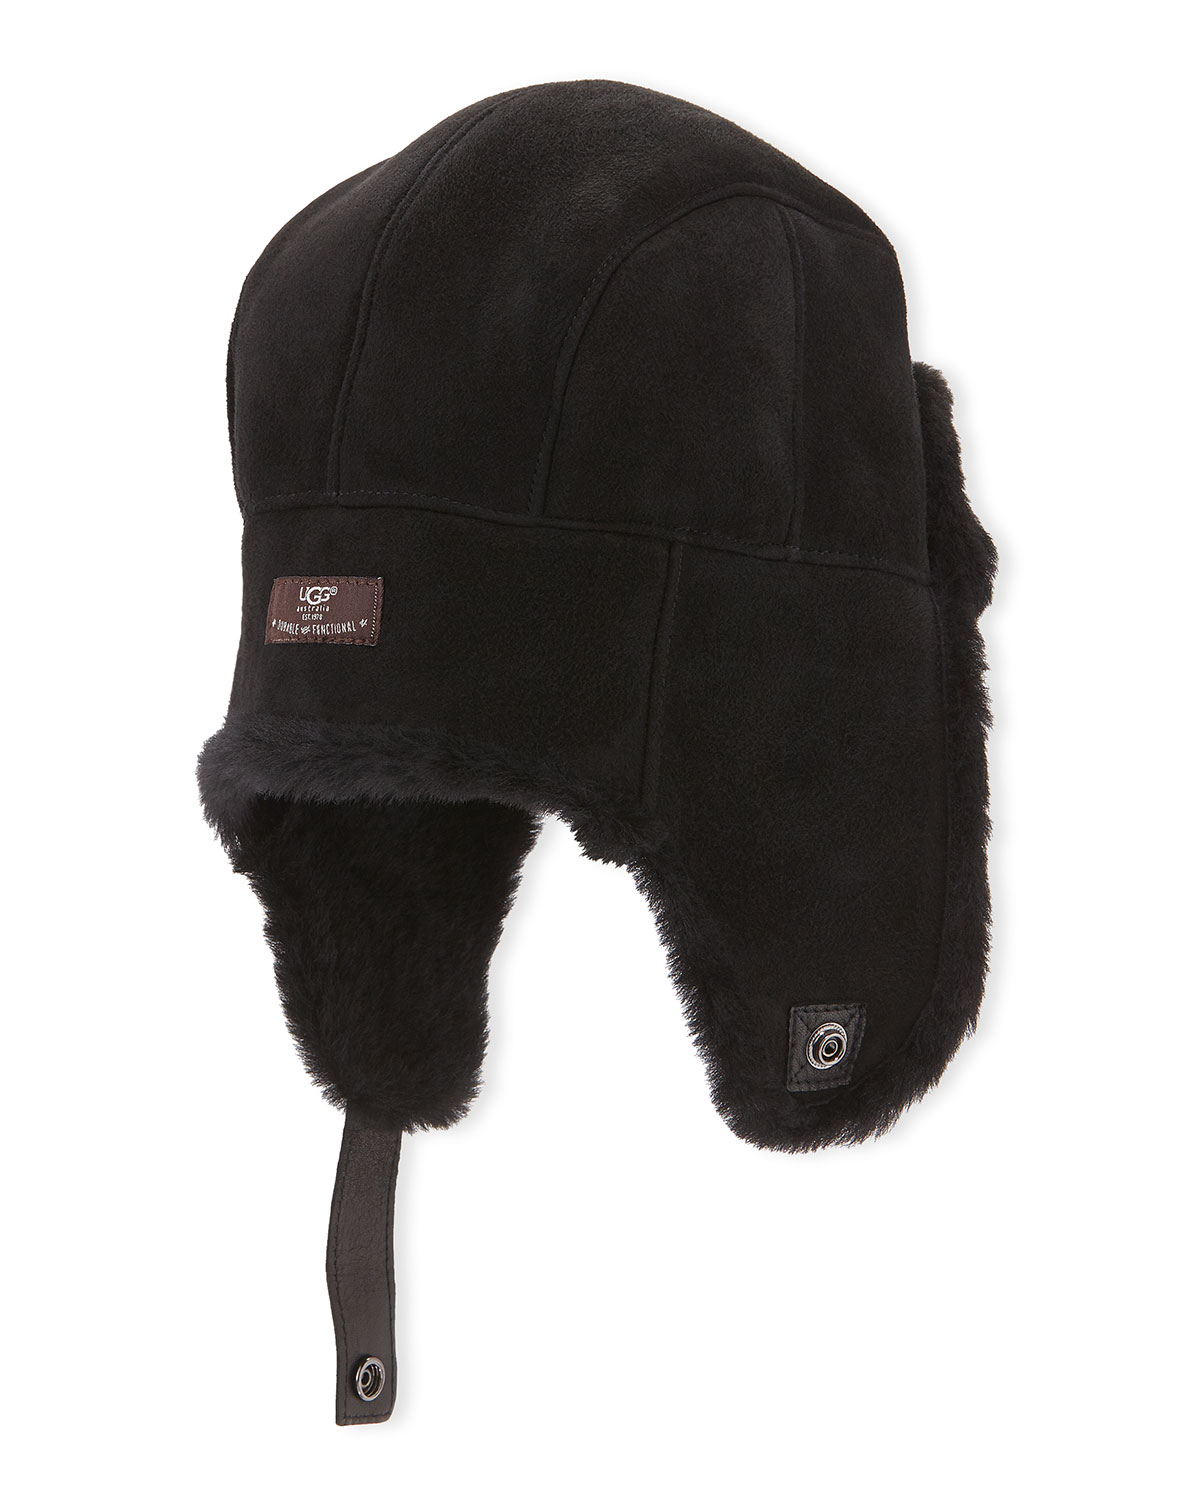 b86bf8a4f11dc UGG Sheepskin Shearling Trapper Hat in Black for Men - Lyst